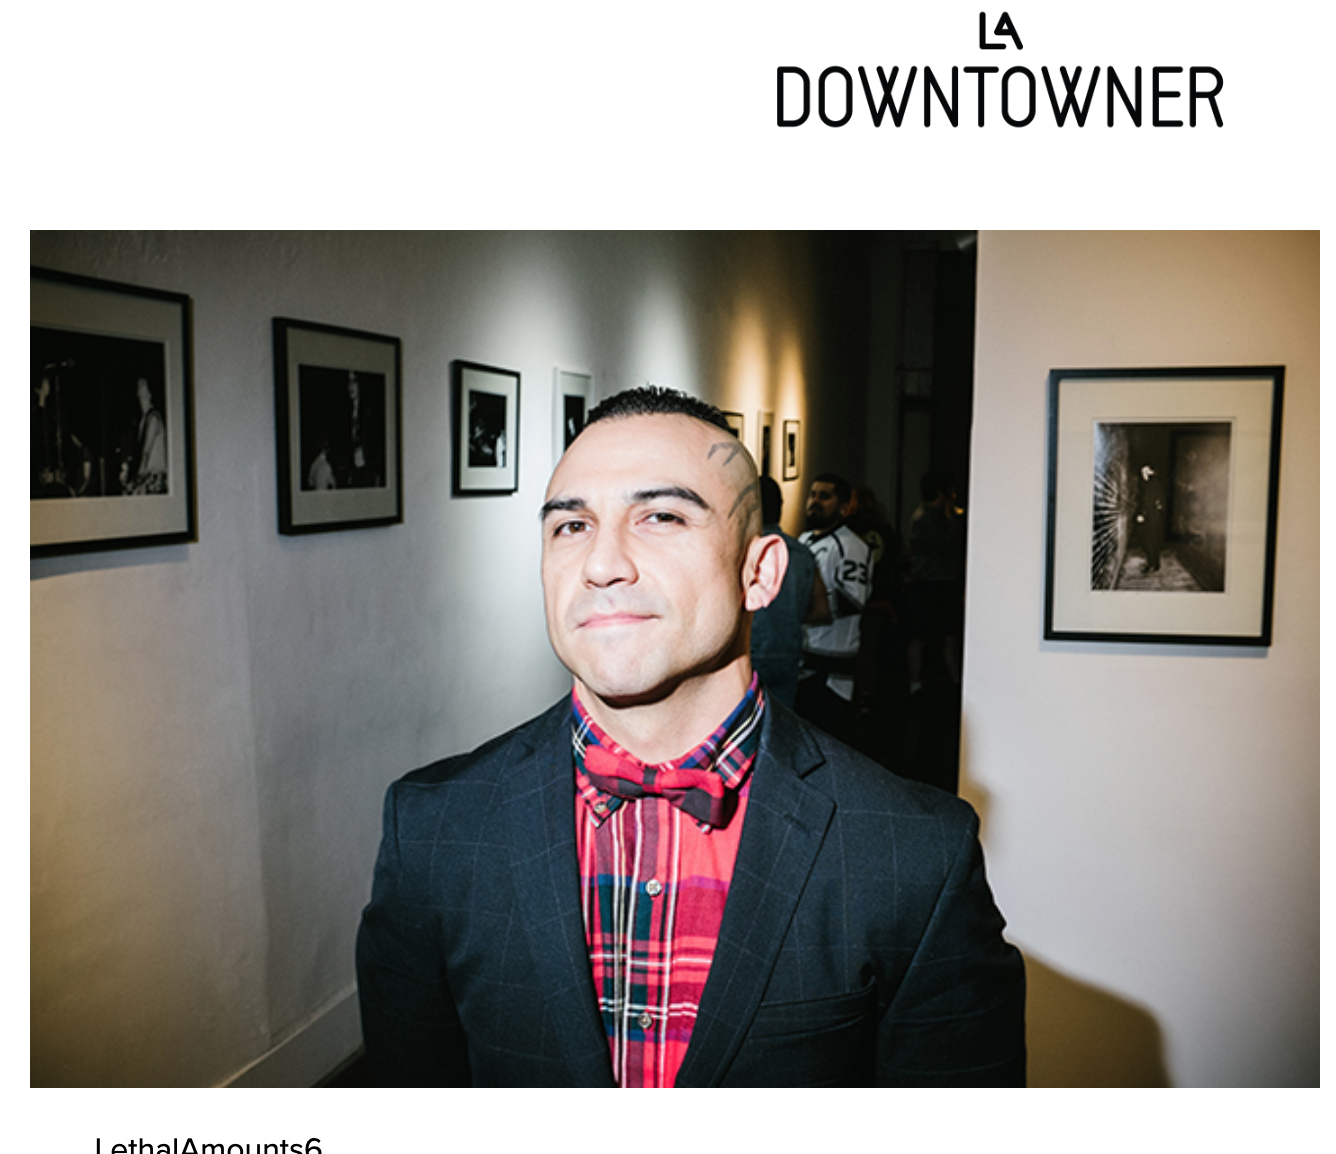 LA DOWNTOWNER - Feature on the gallery and curations